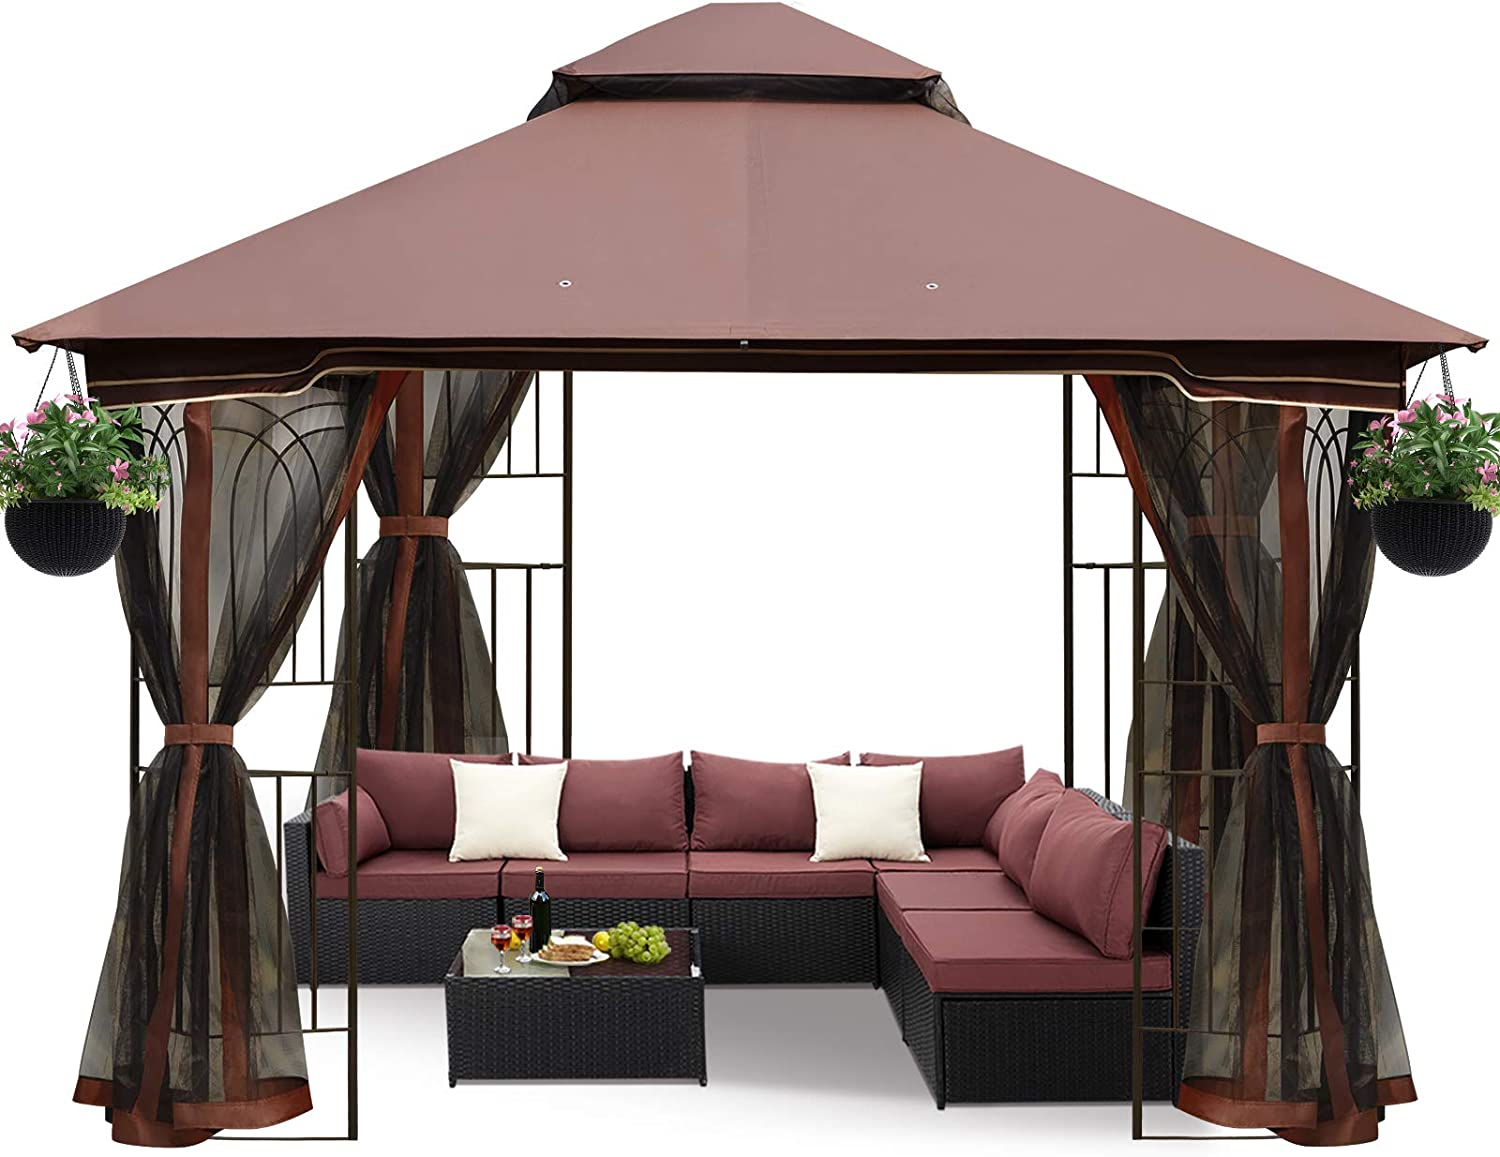 ECOTOUGE 10FT Outdoor Gazebo for Patios, Double Waterproof Soft-top Canopy, Garden Tent with Netting for Party, Backyard, Chocolate